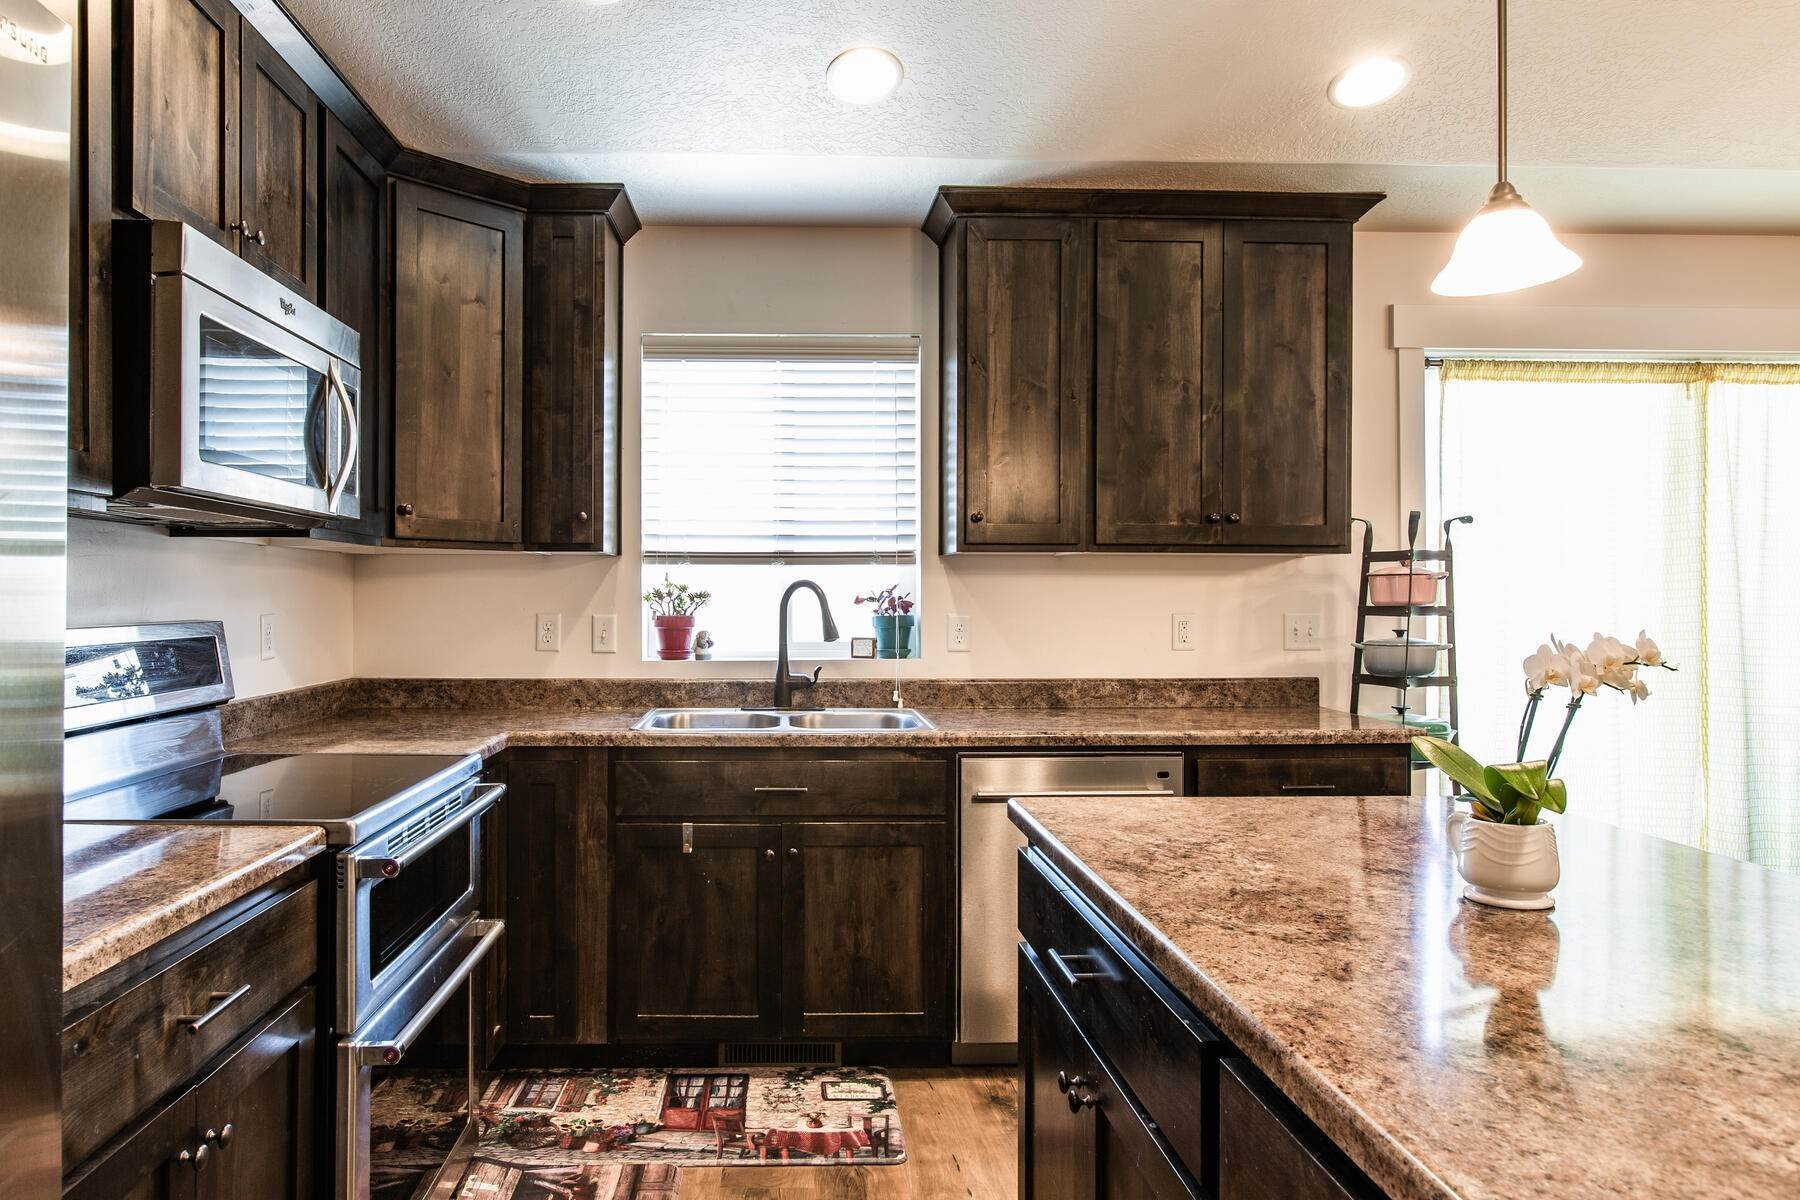 10. Single Family Homes for Sale at Beautiful Home in Quiet Neighborhood. 676 South 930 East Heber City, Utah 84032 United States